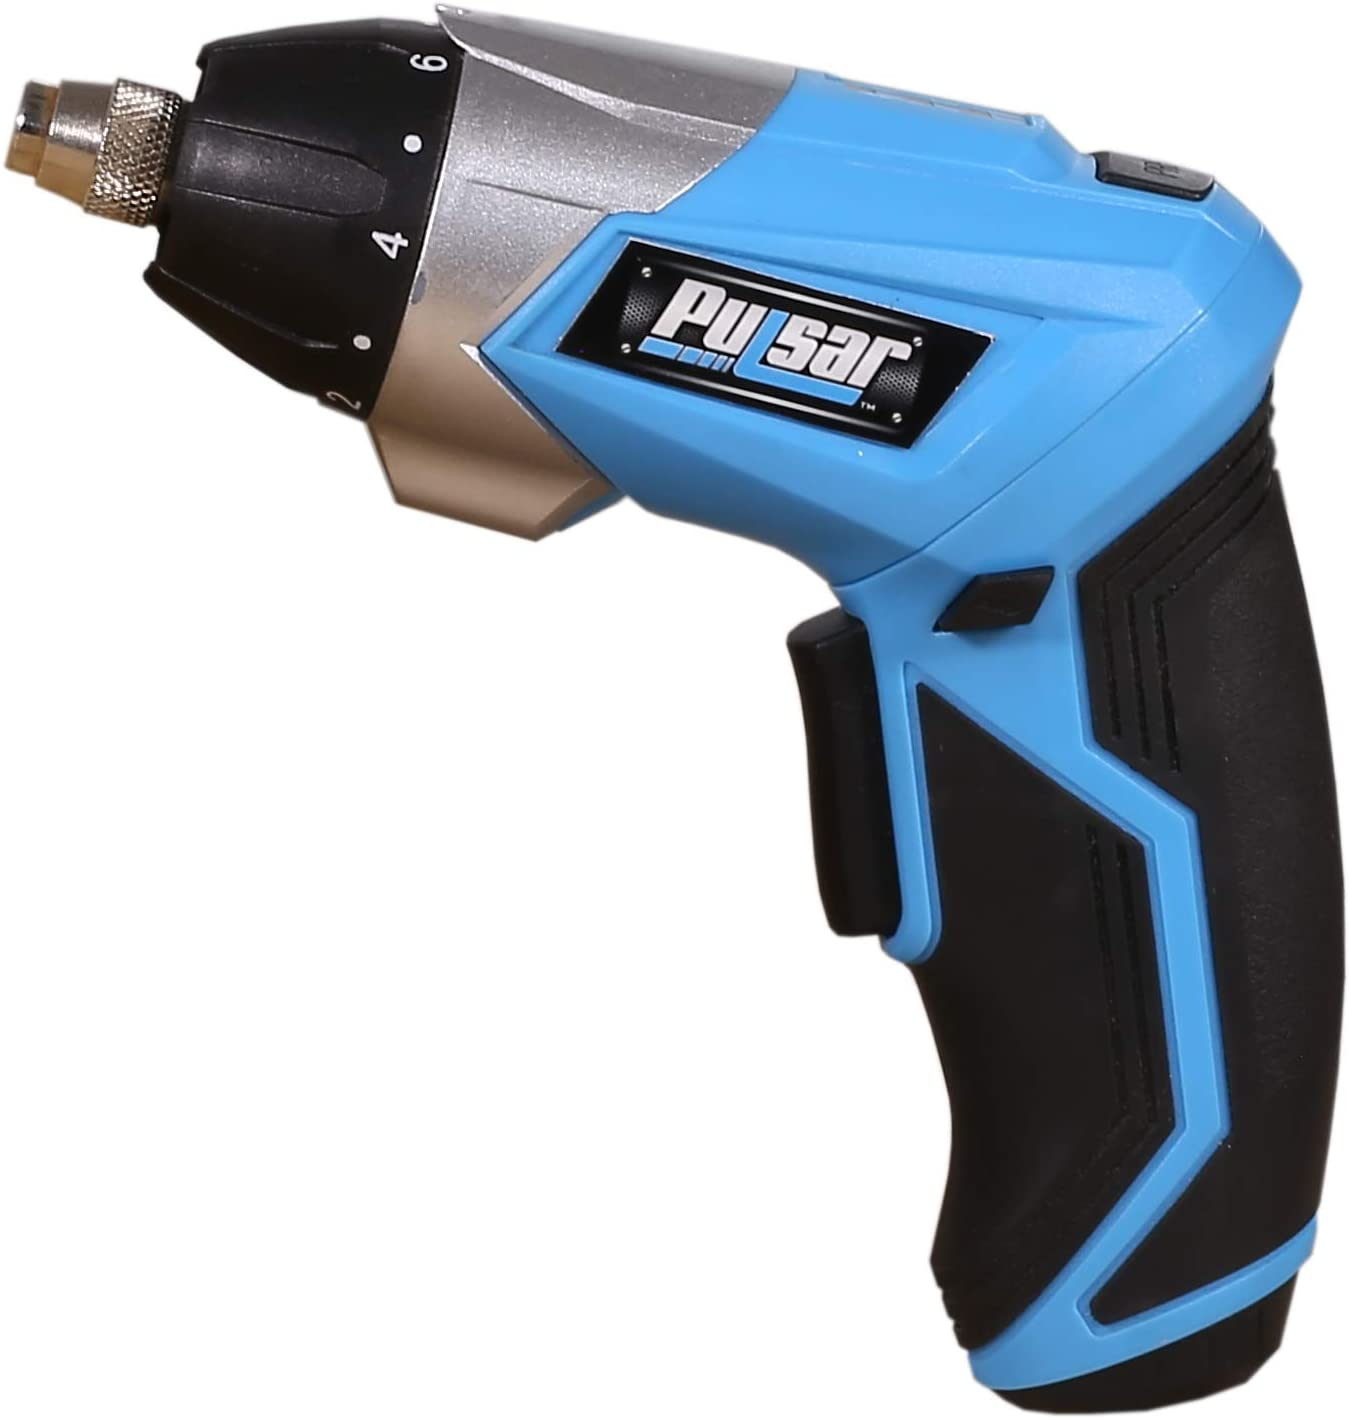 """Pulsar 3.6V Lithium-Ion 10+1 Torque Setting Cordless ¼"""" Screwdriver with Built-In LED Spotlight, LED Flashlight & Accessories, PT28136"""